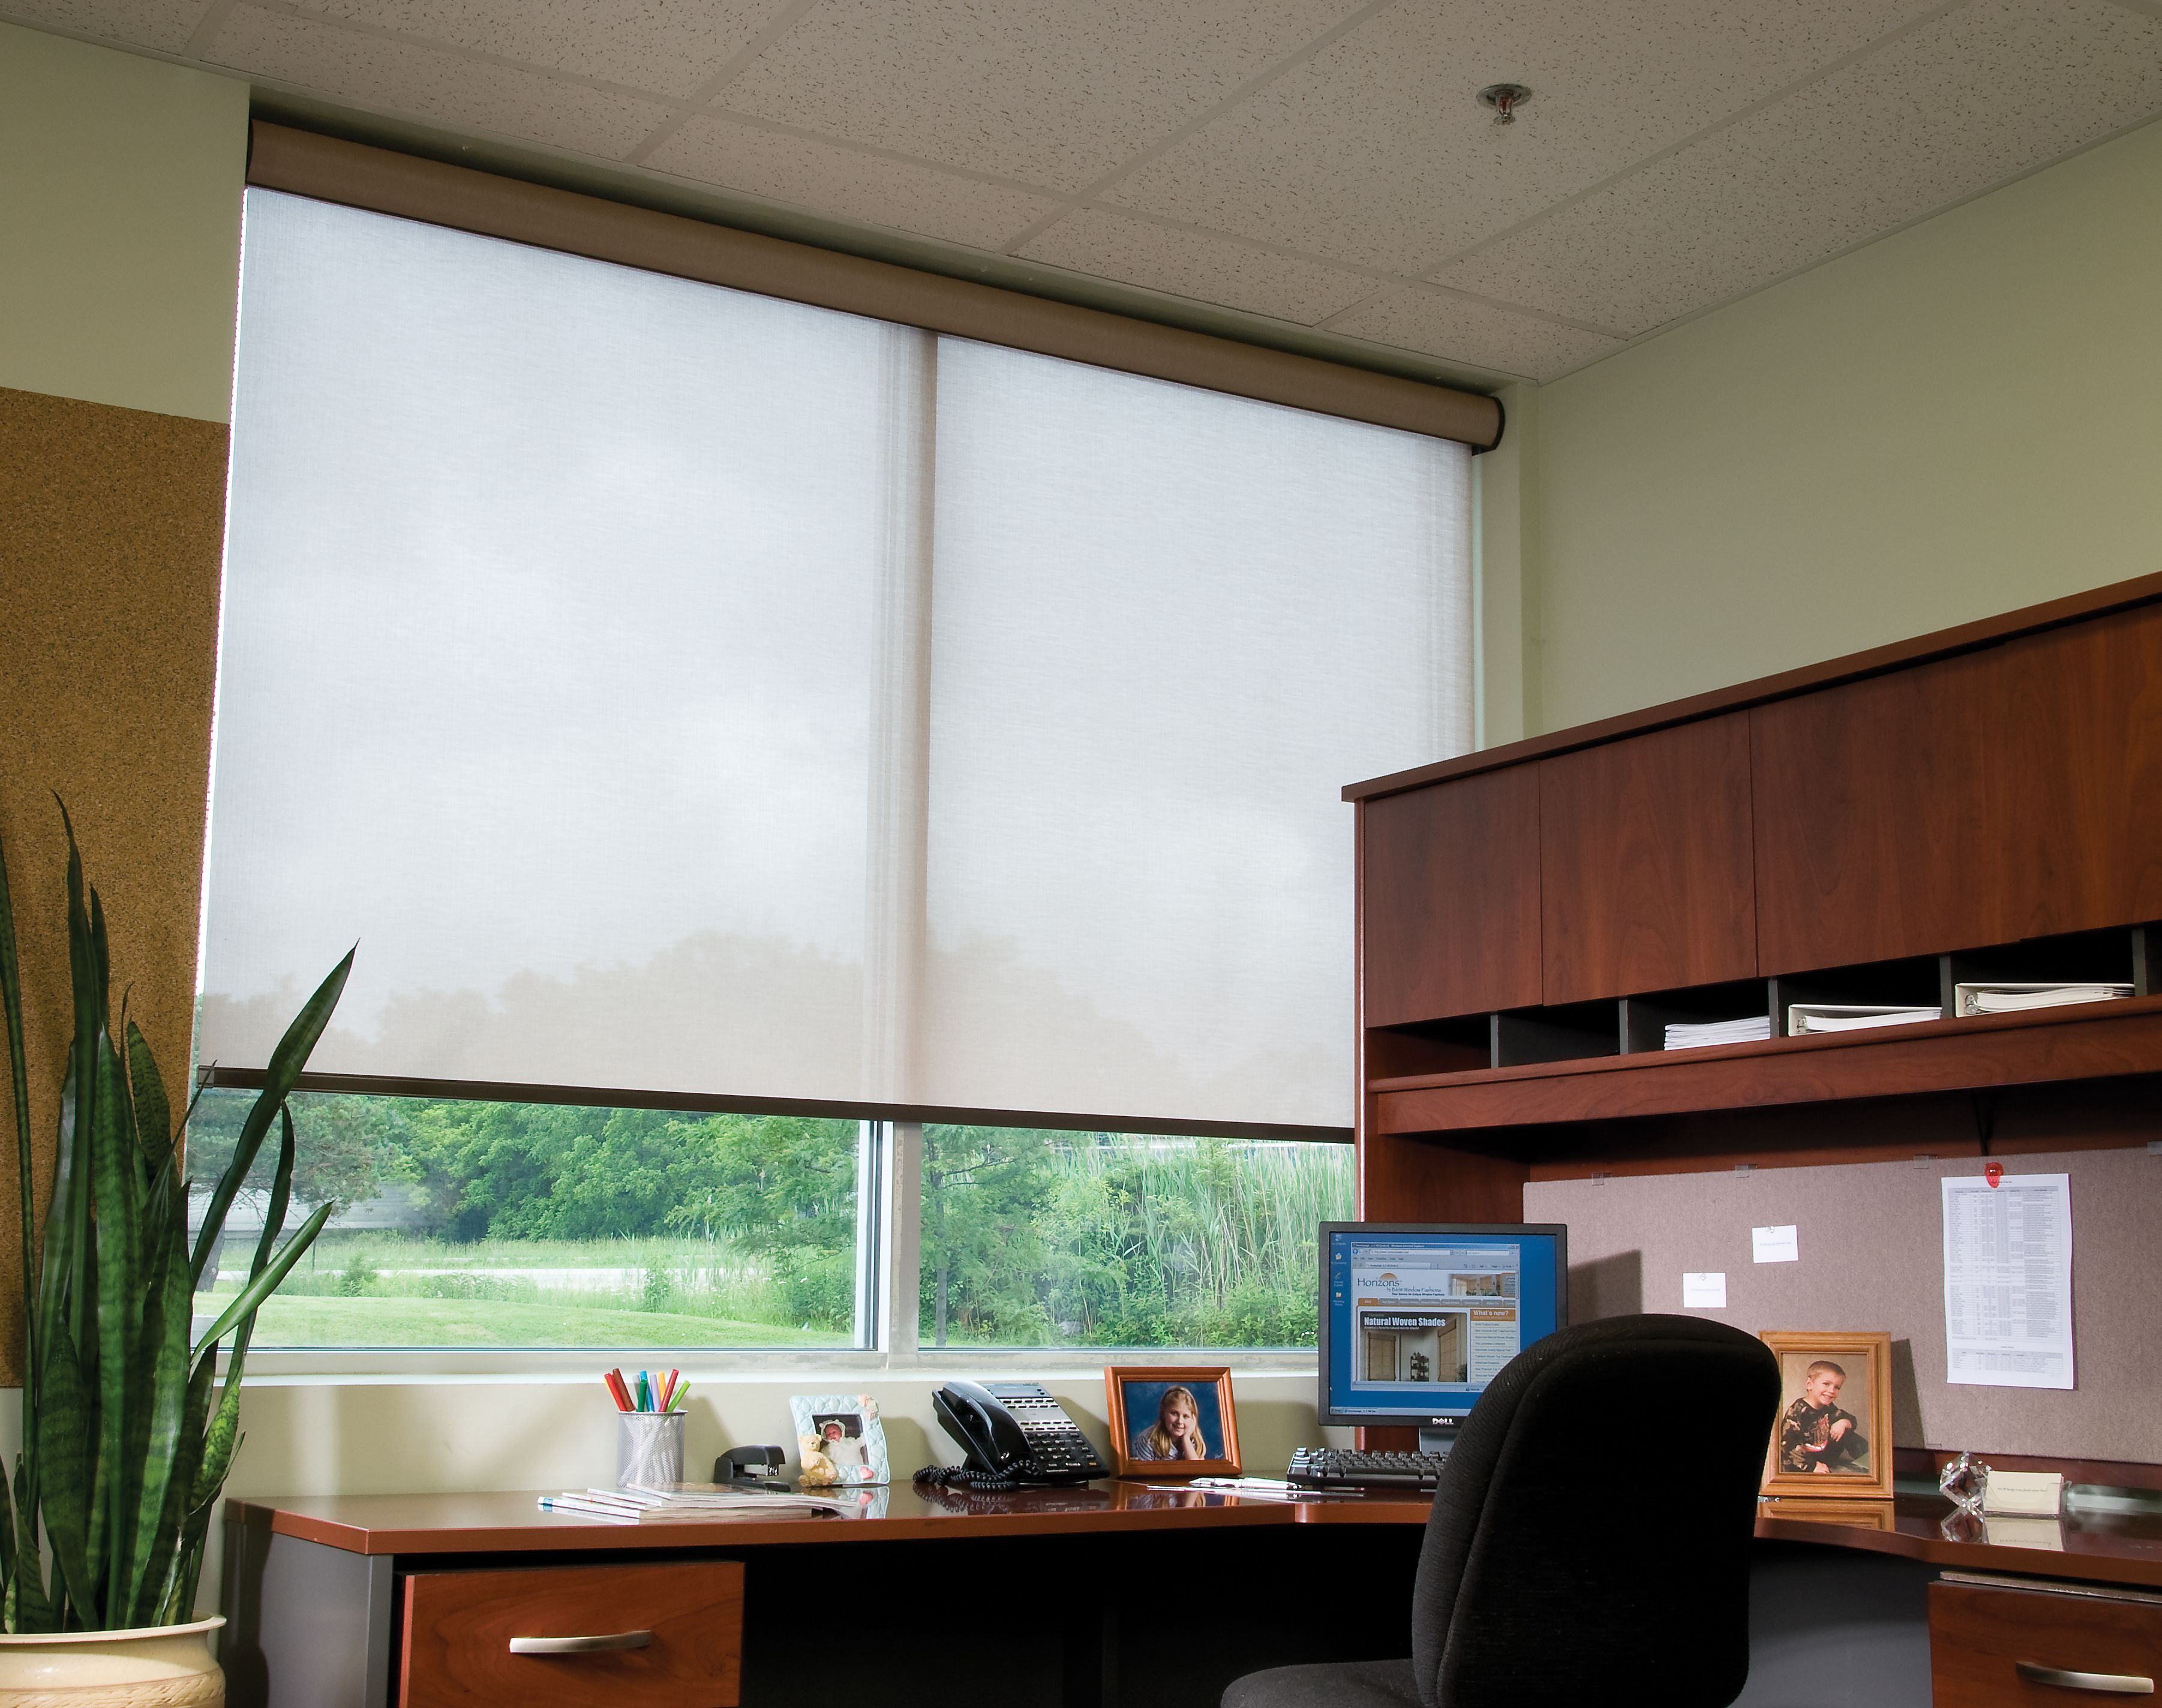 Delightful Home Office With Beautiful View And Large Windows. Motorized White Roller  Shades With Cassette Valance Make The Perfect Solution For Floor To Ceiling  ...